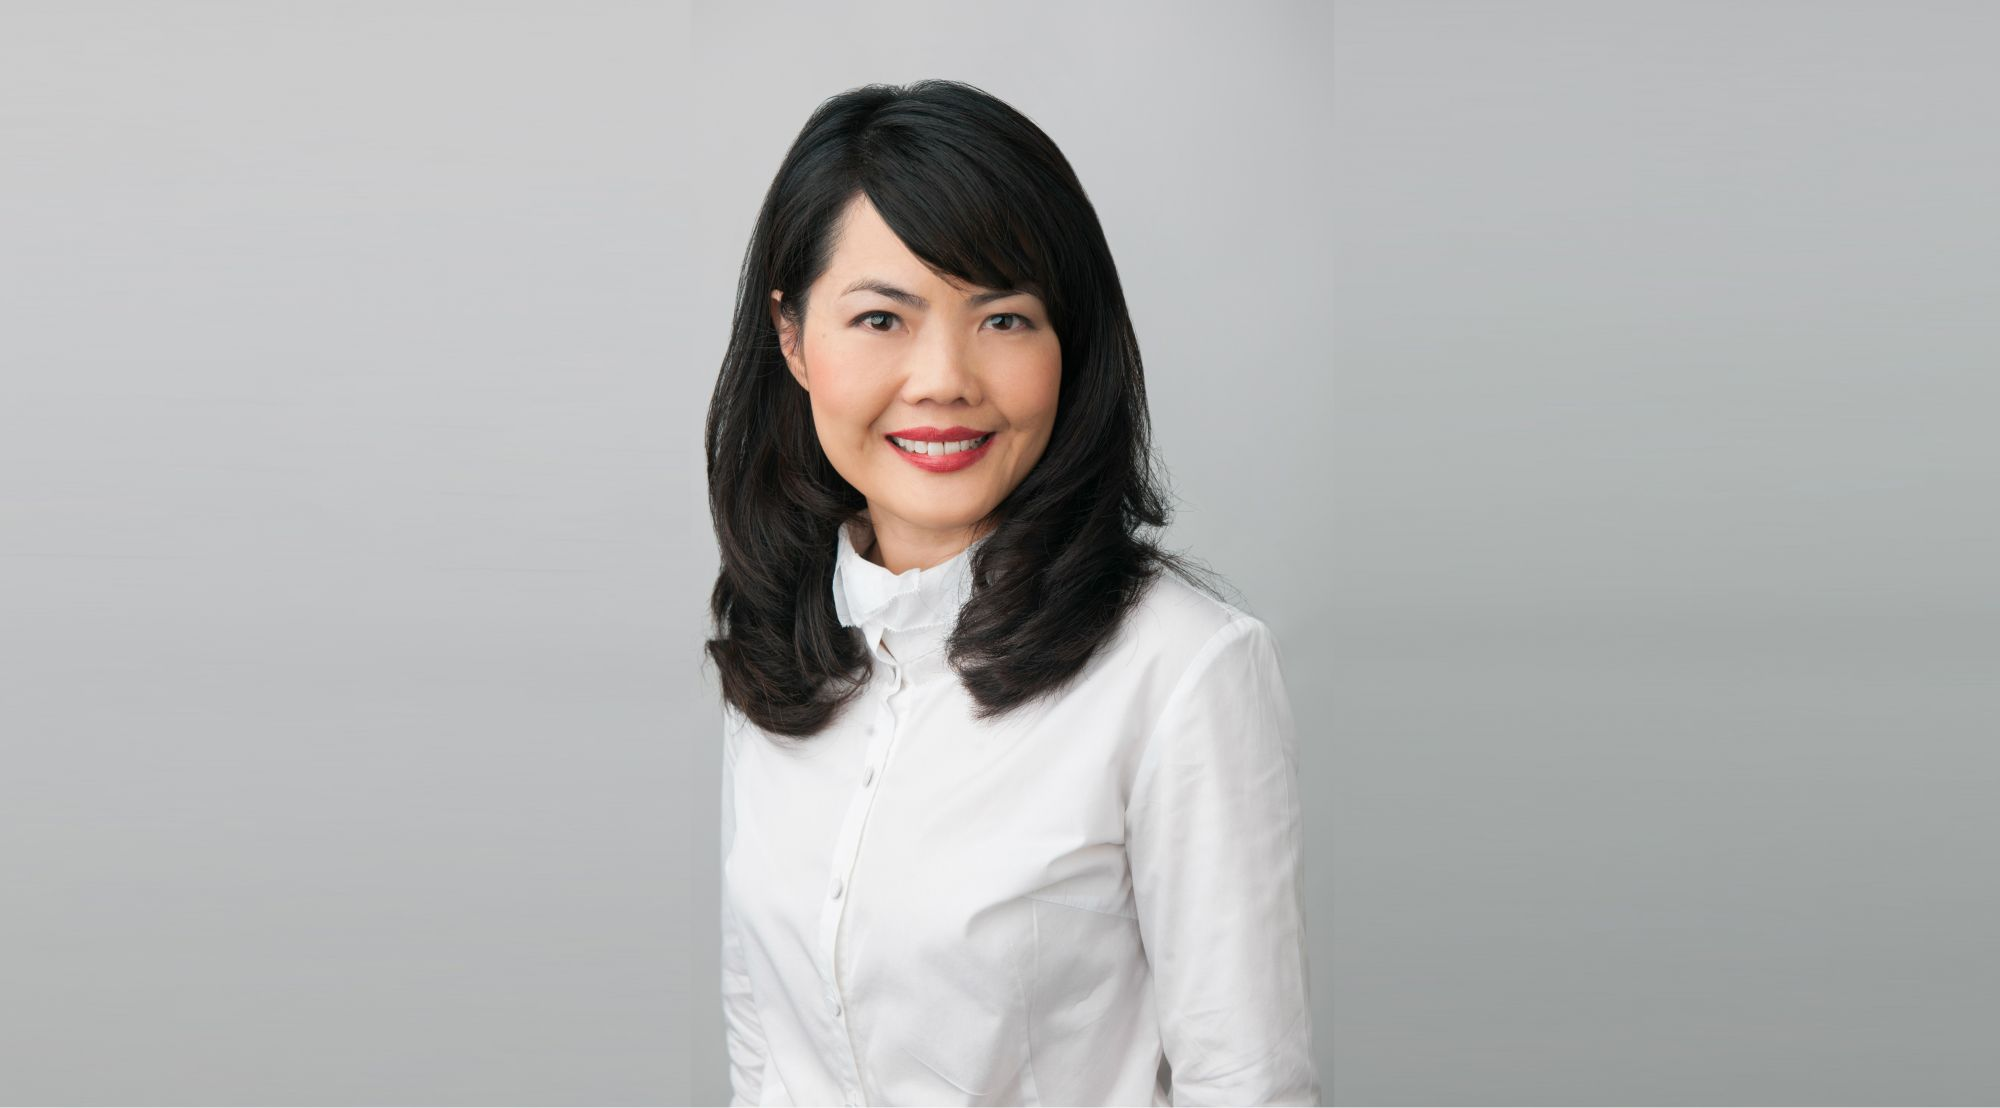 Fortune Favours The Bold, Says M+S's Kemmy Tan